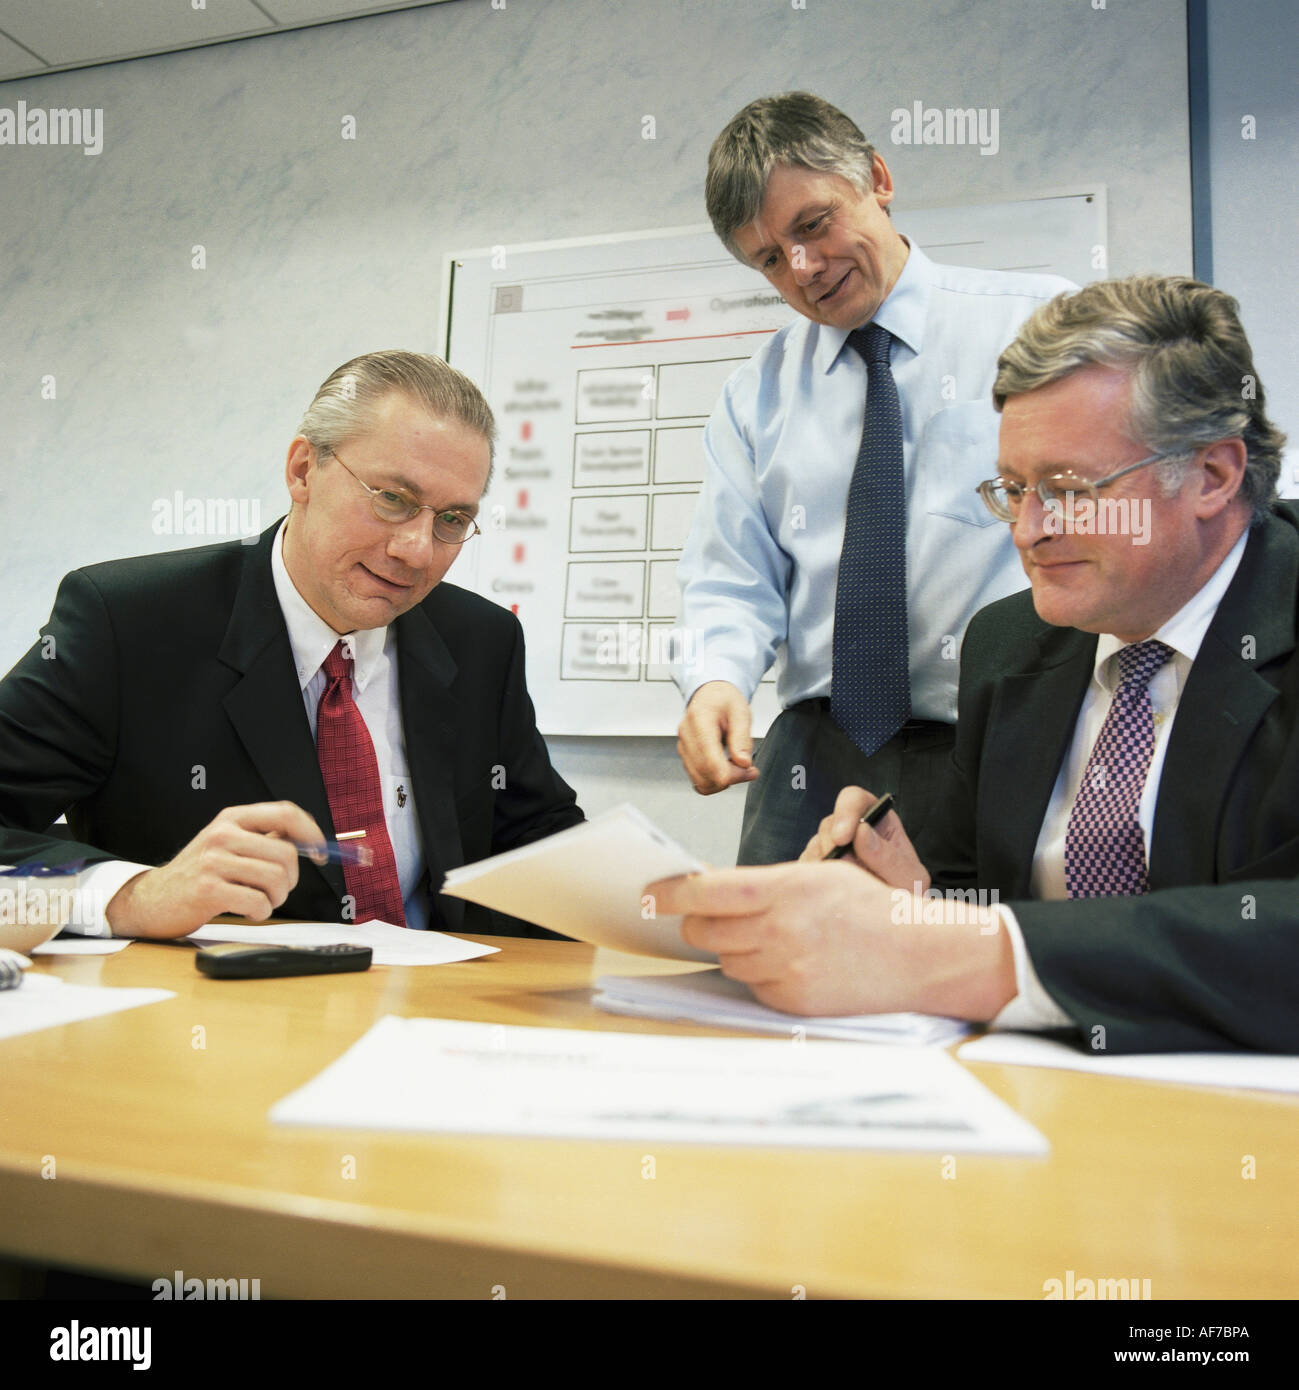 British industry. Three businessmen meeting in office. - Stock Image